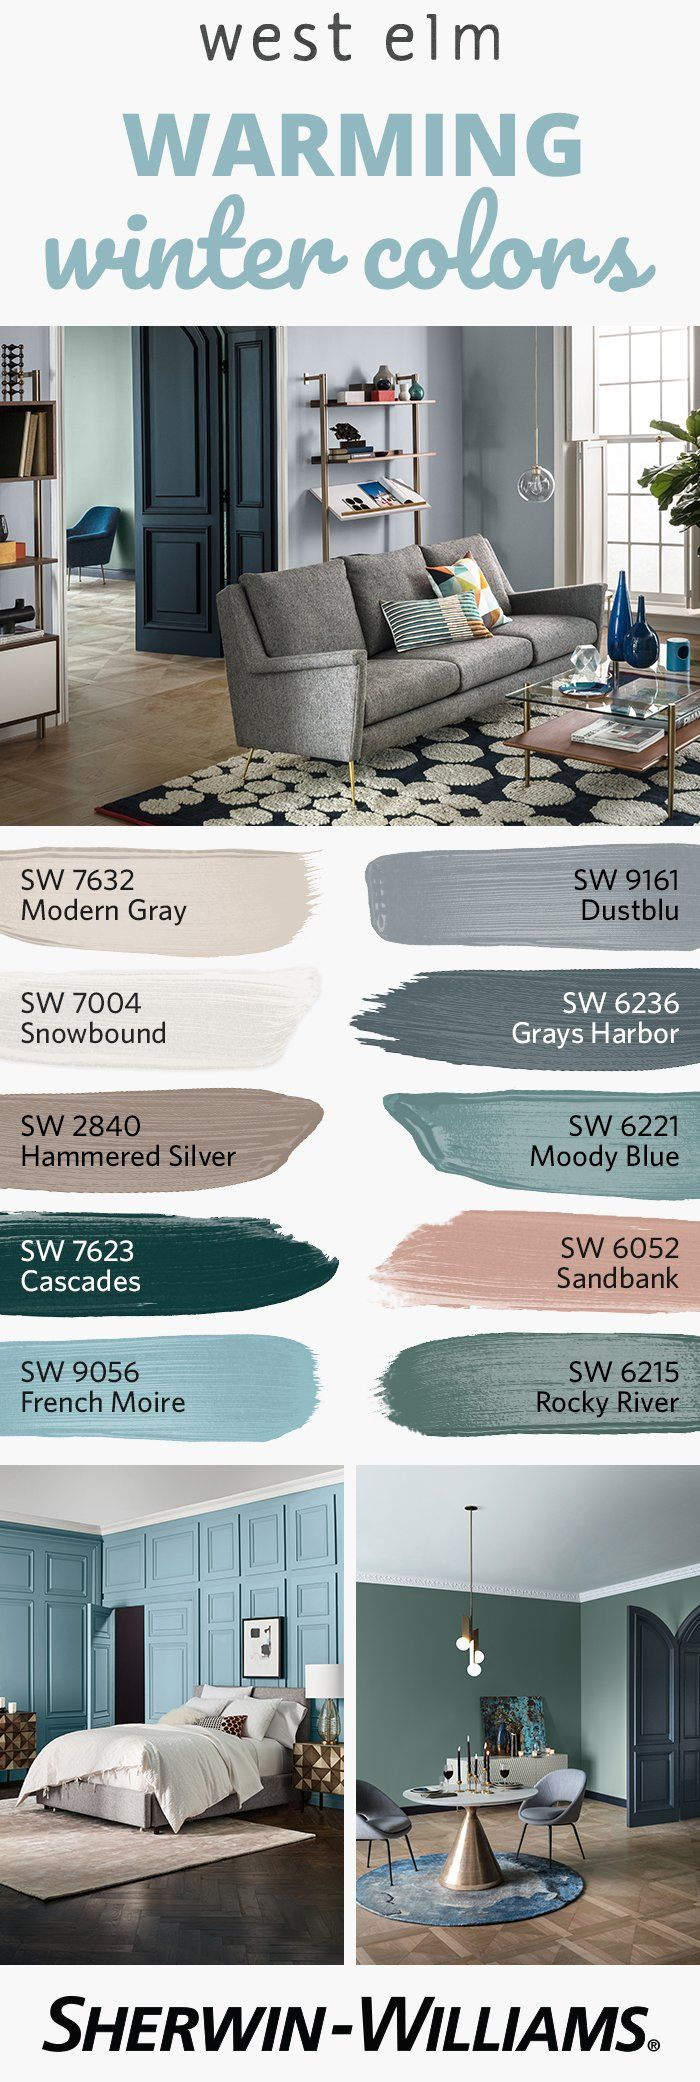 As it gets cold outside, bring some warmth inside with the colors of the @westelm Fall/Winter 2017 palette. Perfect for doors, trim, accent walls and more, this collection features 12 neutral-forward hues, each picked to complement furniture, bedding and home accessories. Whether you choose just one or create a palette, these colors are sure to warm up your style.